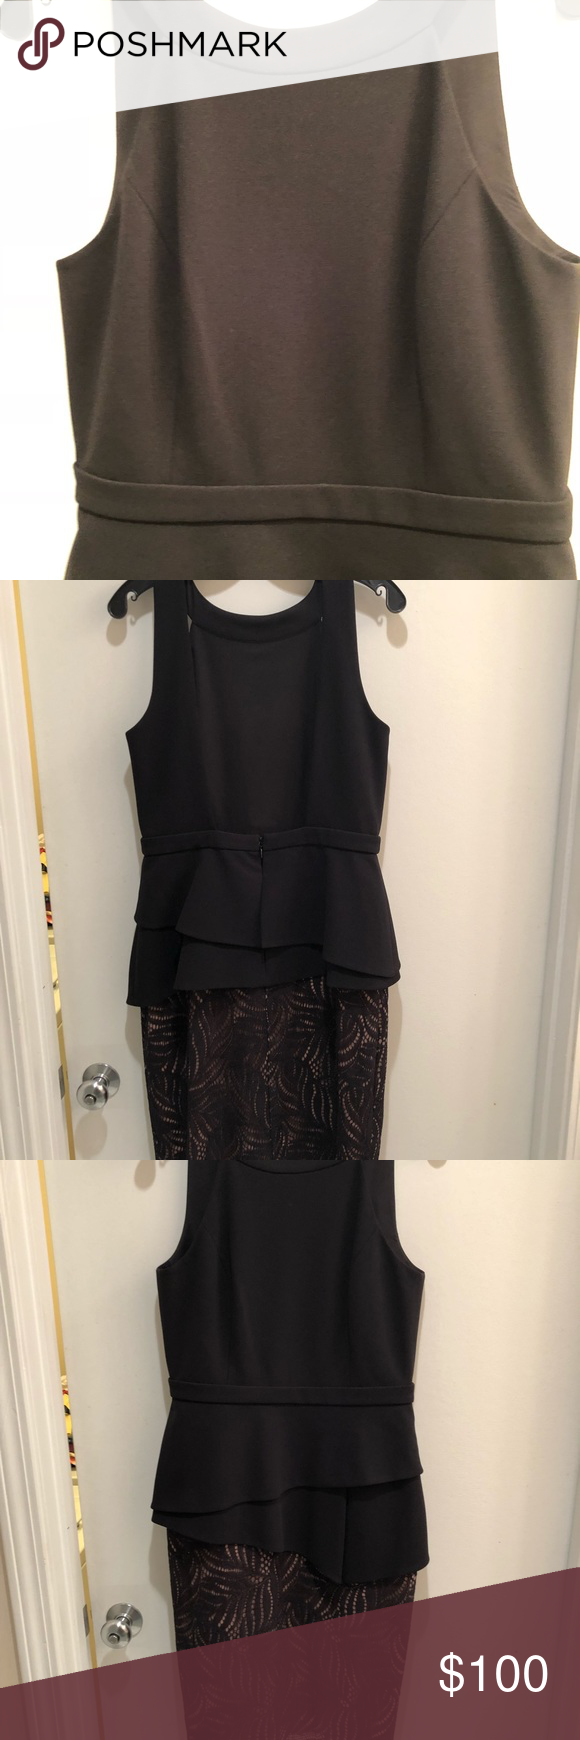 BCBG Maxazria Cocktail Dress Gorgeous. Black crepe and lace cocktail dress low plunging back. Just stunning. Never worn. No tags.  Size 10. Knee length. BCBGMaxAzria Dresses Backless #backlesscocktaildress